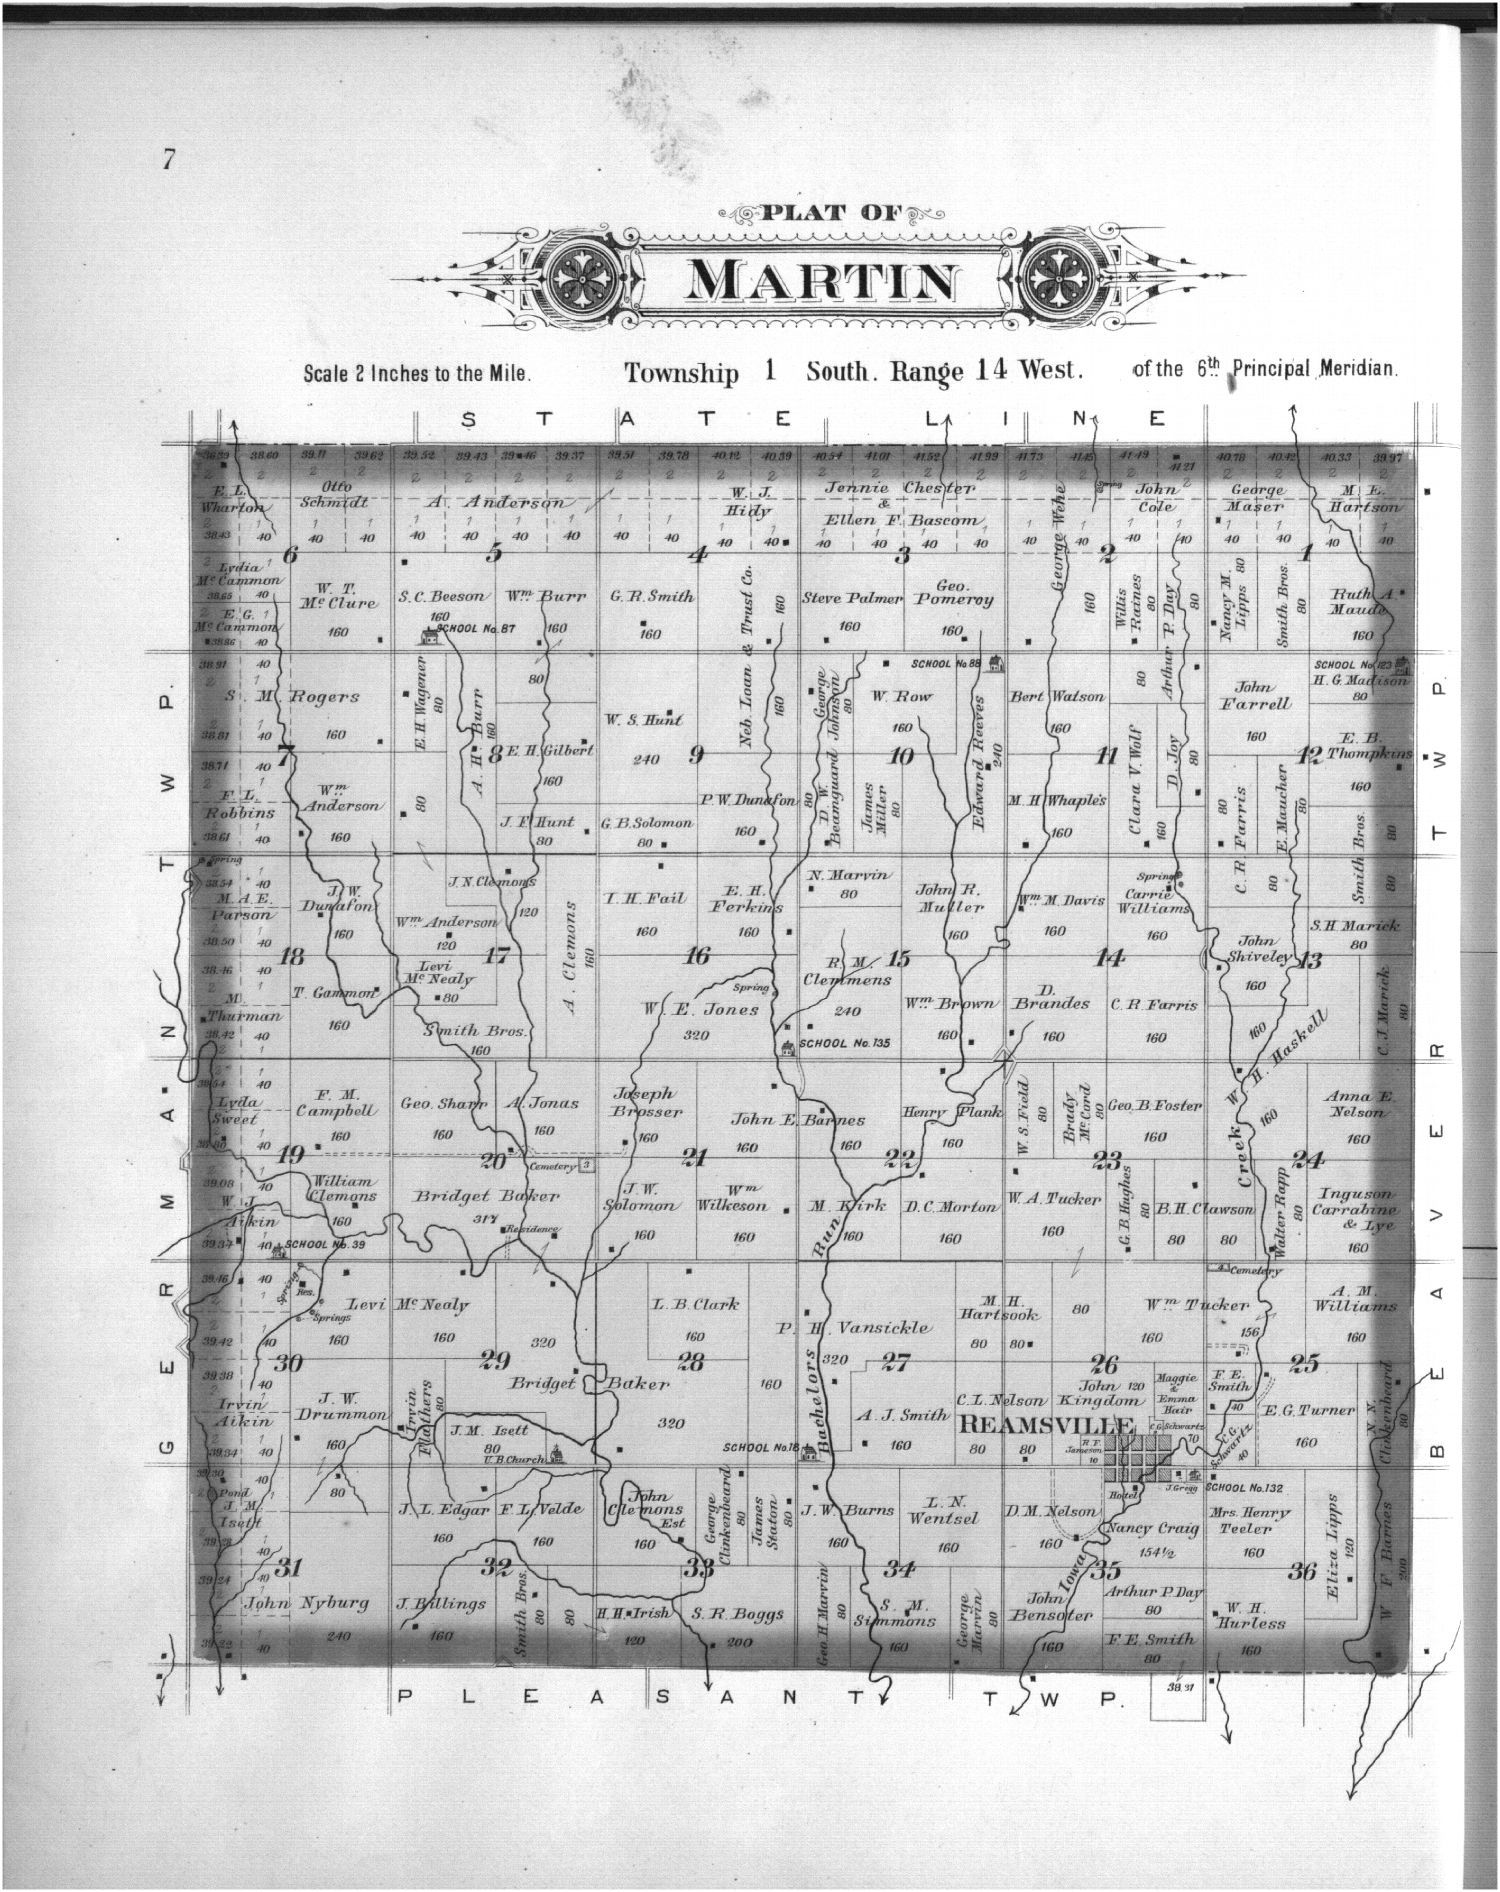 Plat book, Smith County, Kansas - 7